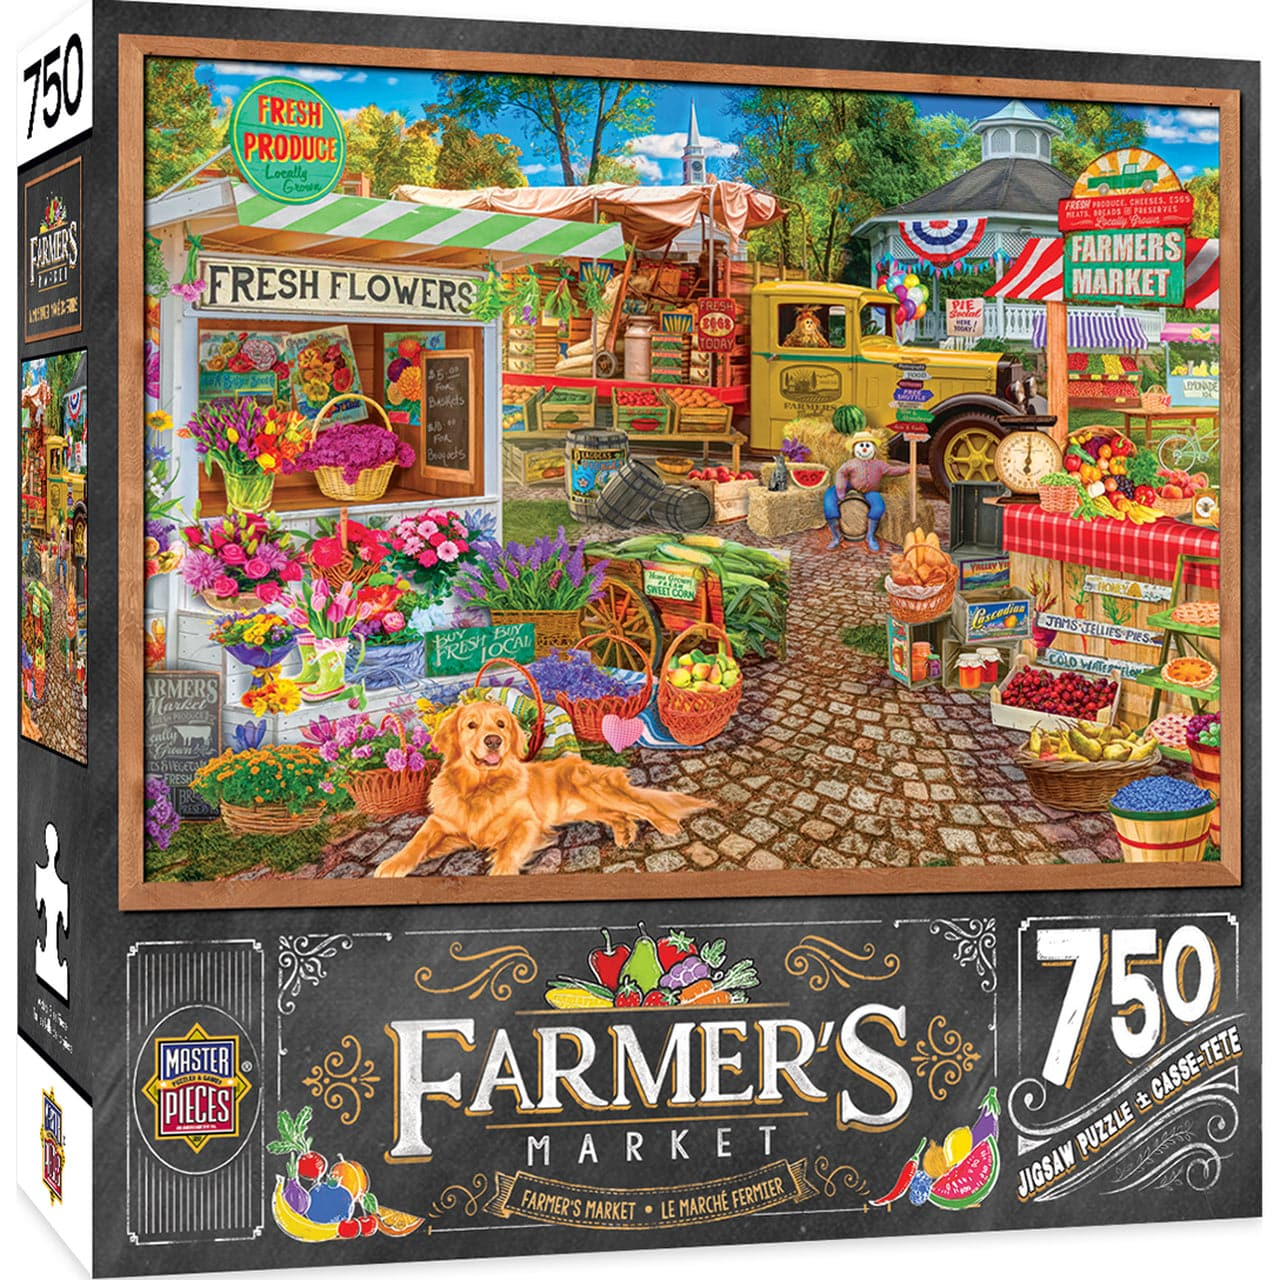 Farmer's Market - Sale on the Square - 750 Piece Puzzle